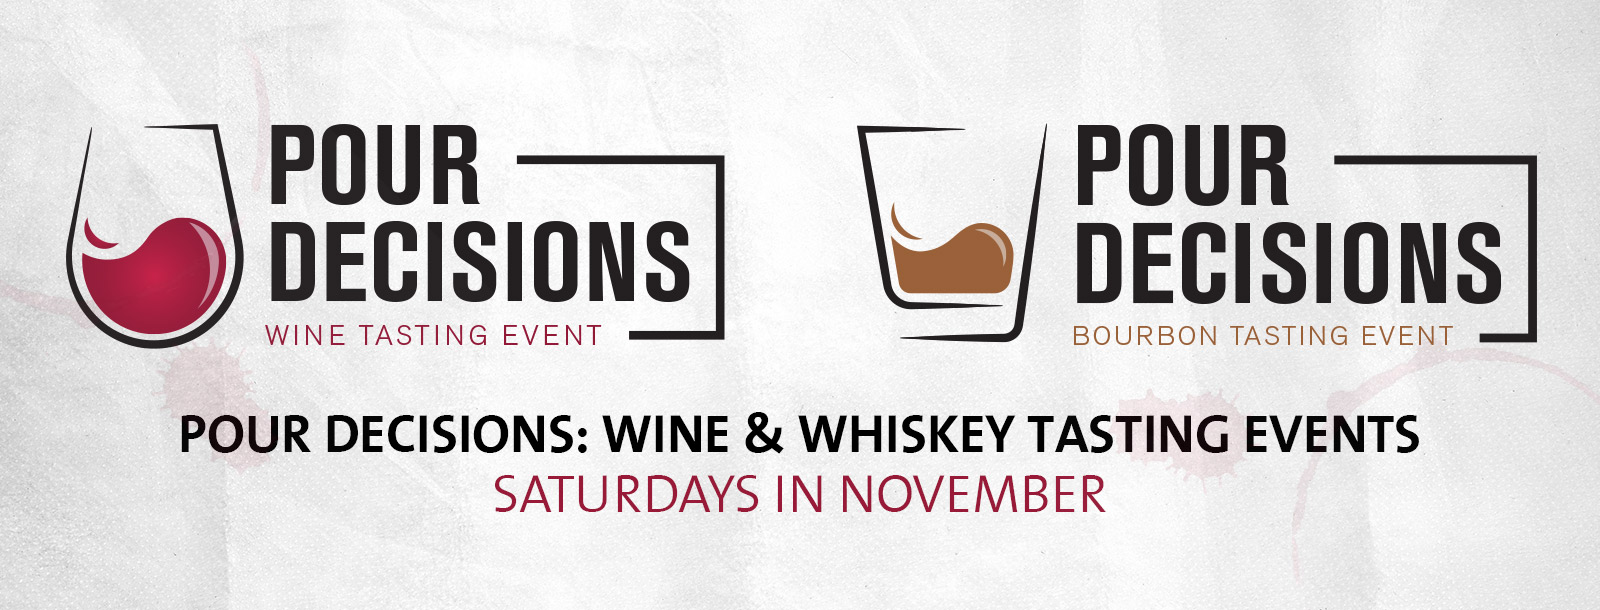 pour decisions tasting events